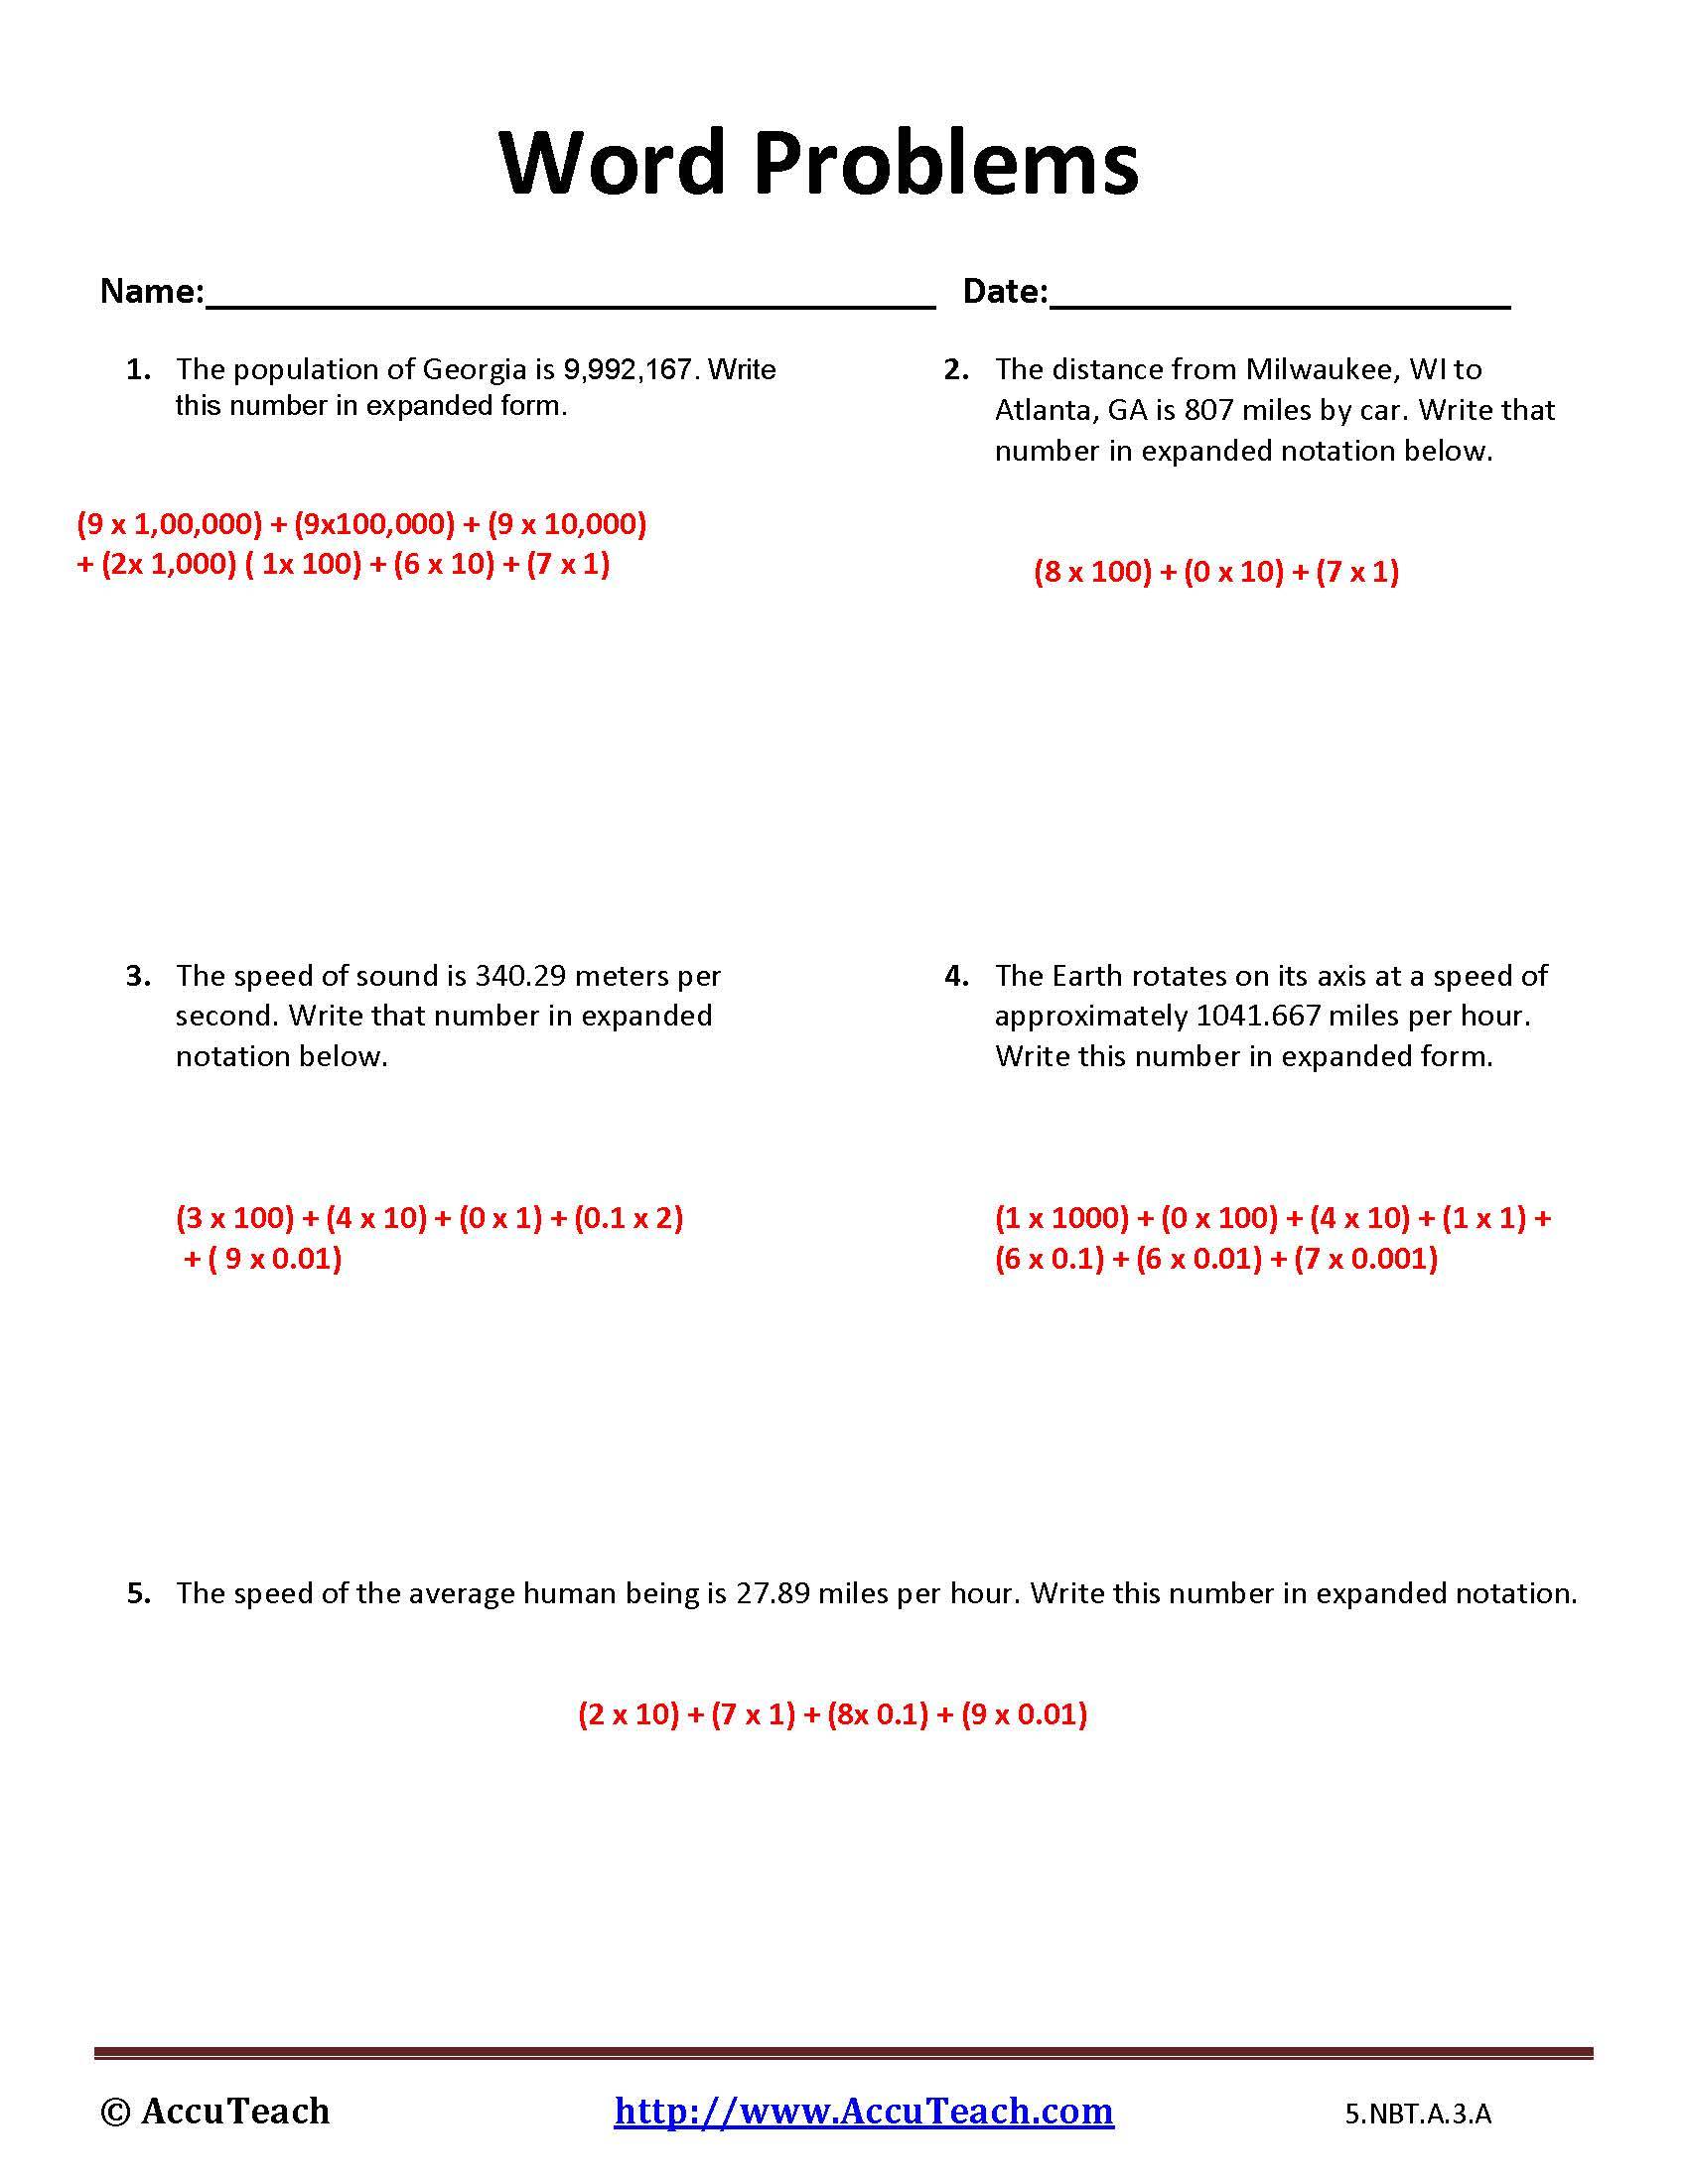 5nbta3a expanded form worksheet activity 16 writing numbers in expanded form 5nbta falaconquin